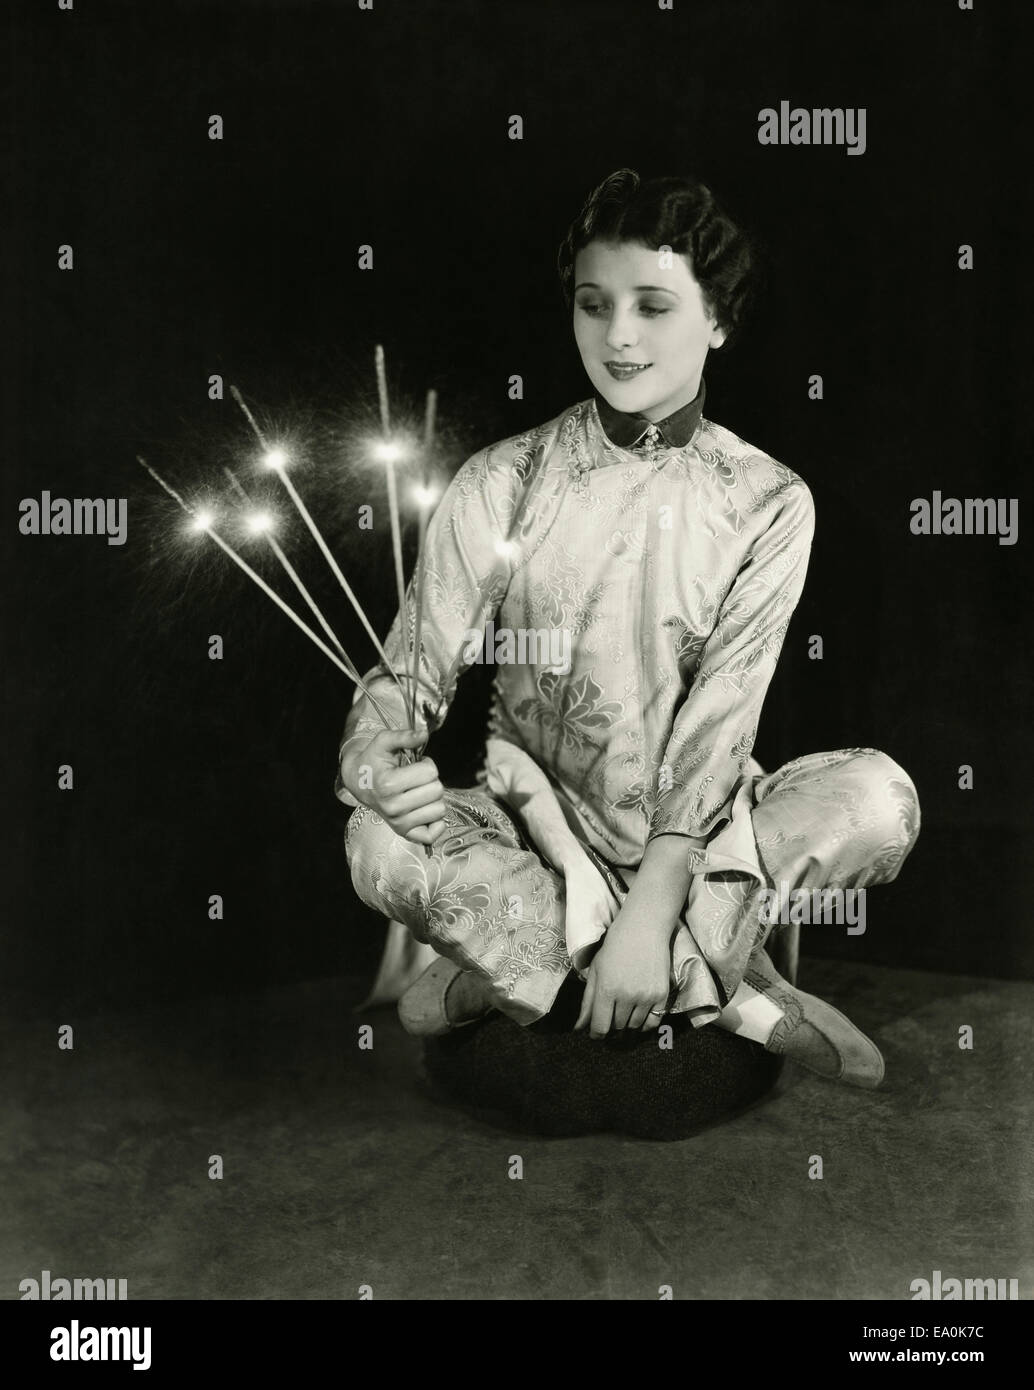 A woman holds sparklers - Stock Image